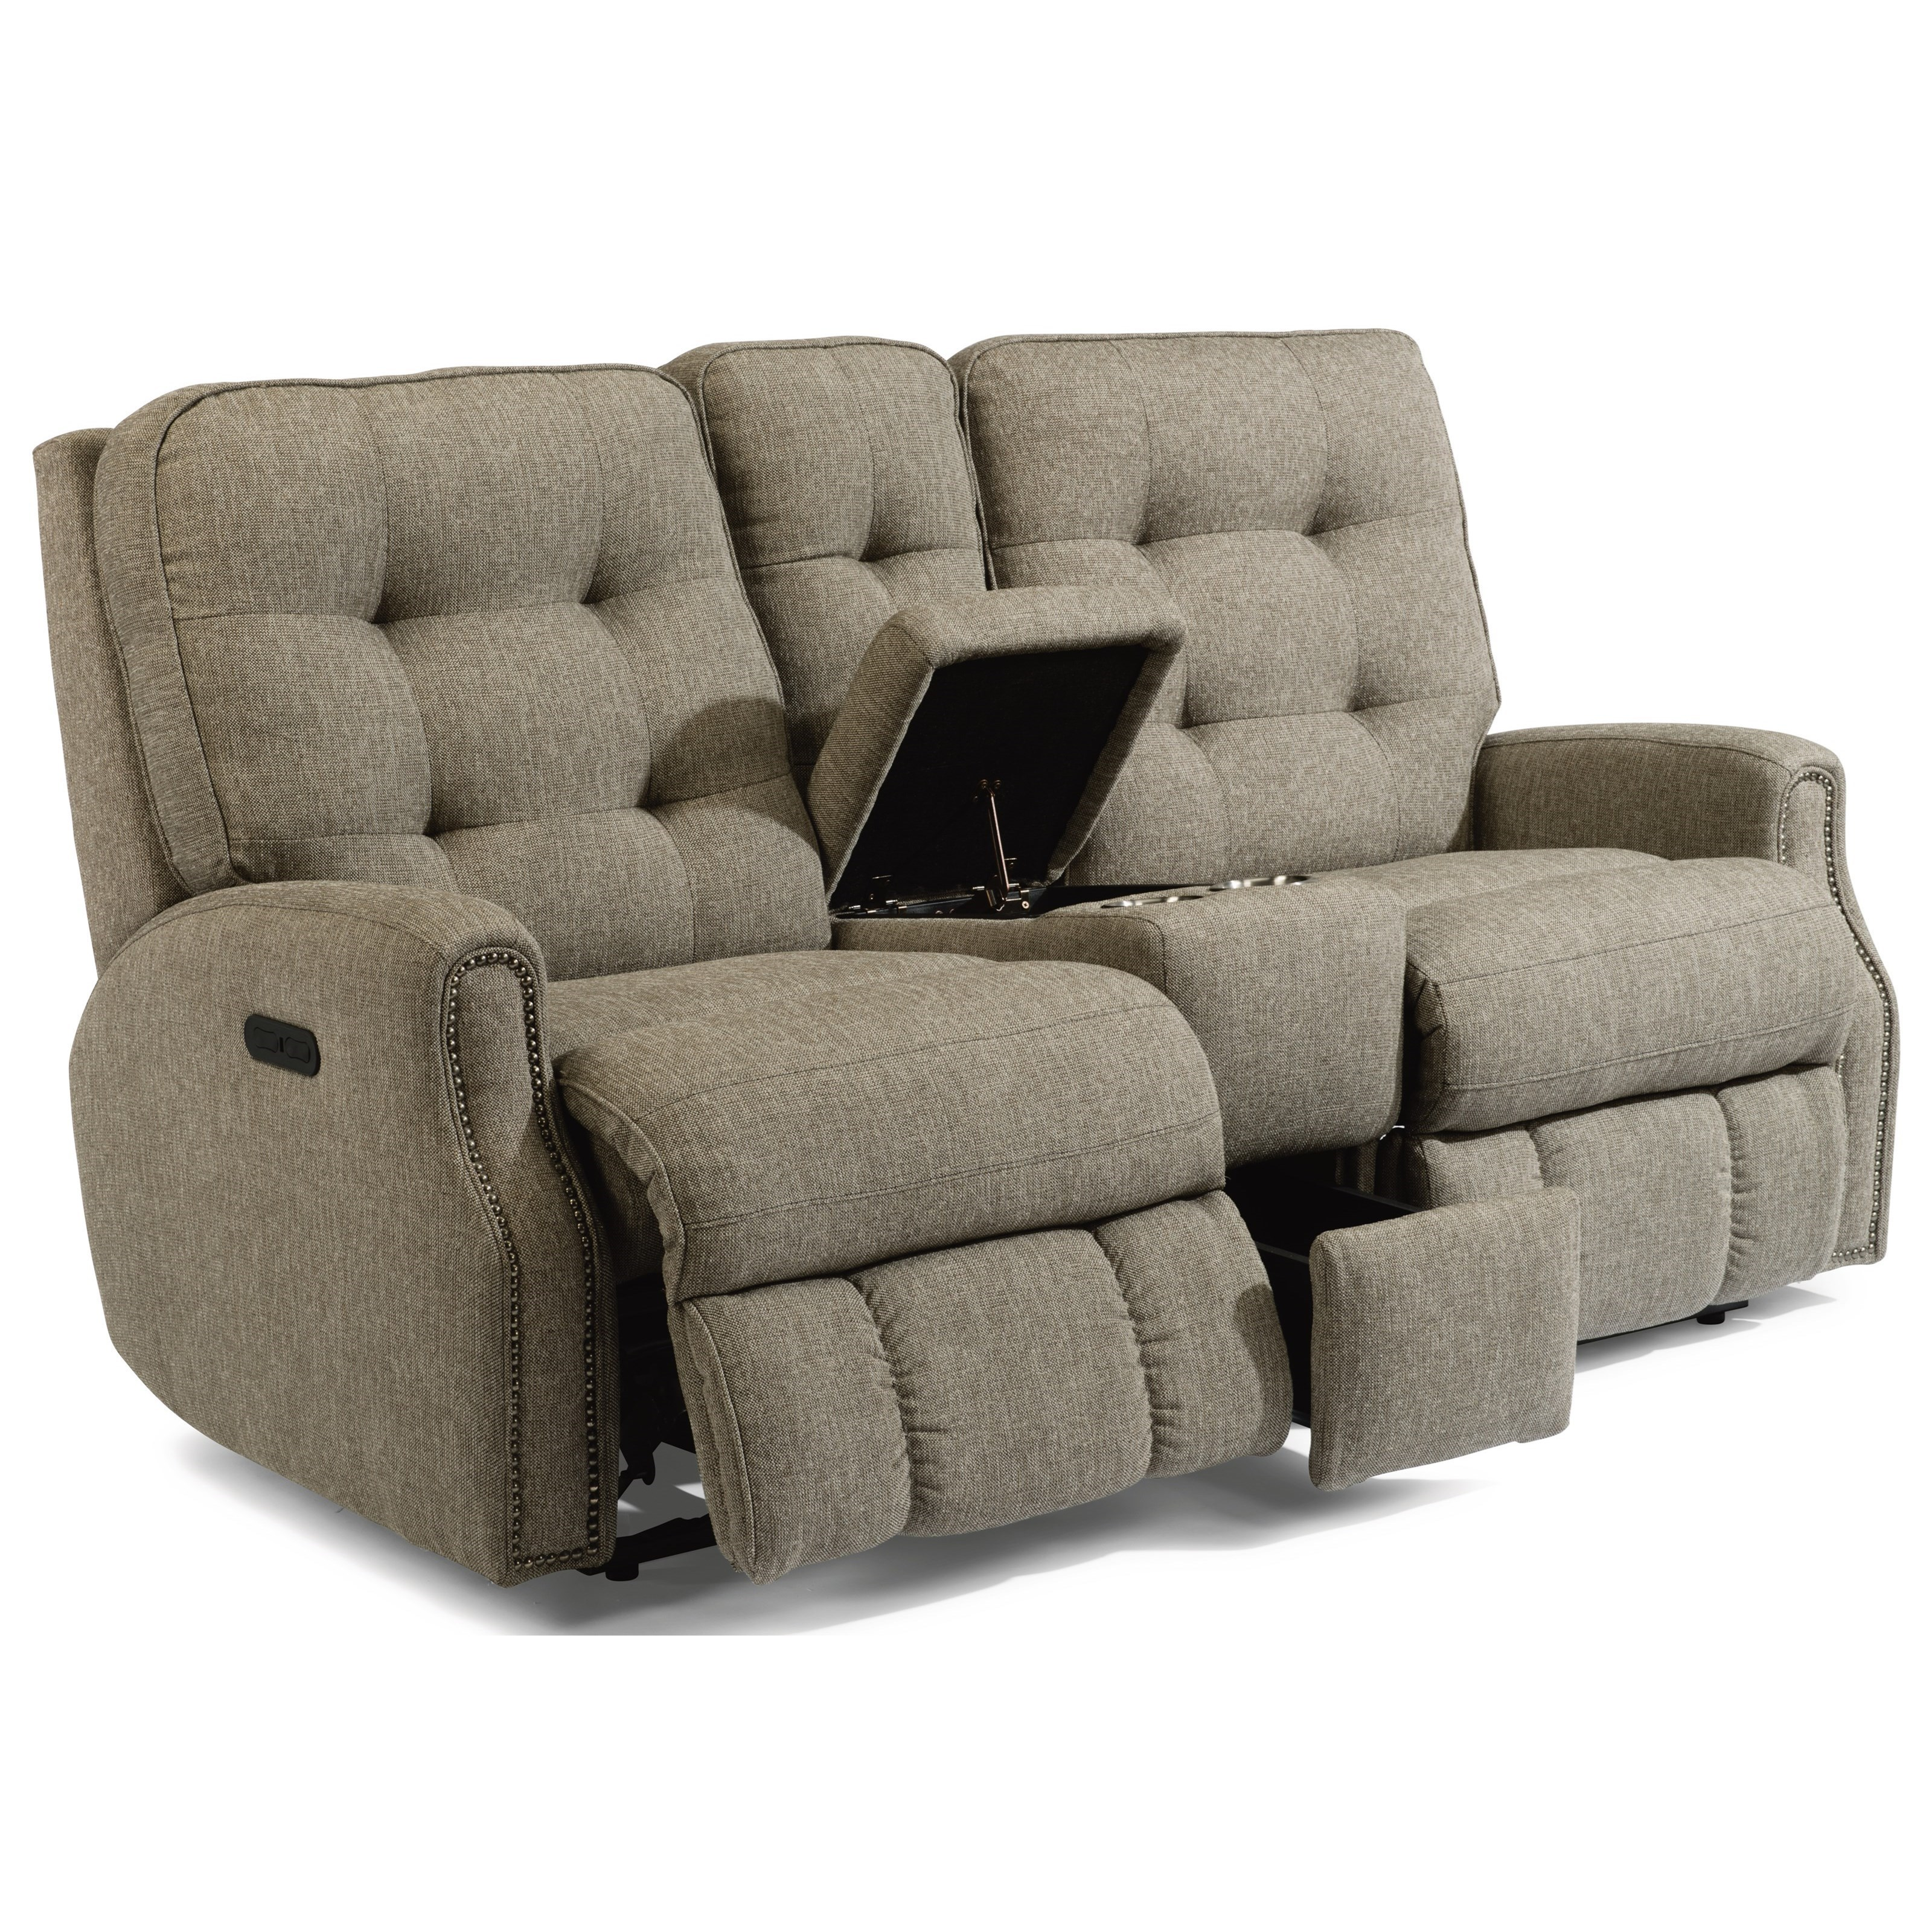 Button Tufted Power Reclining Console Loveseat with Nailhead Trim